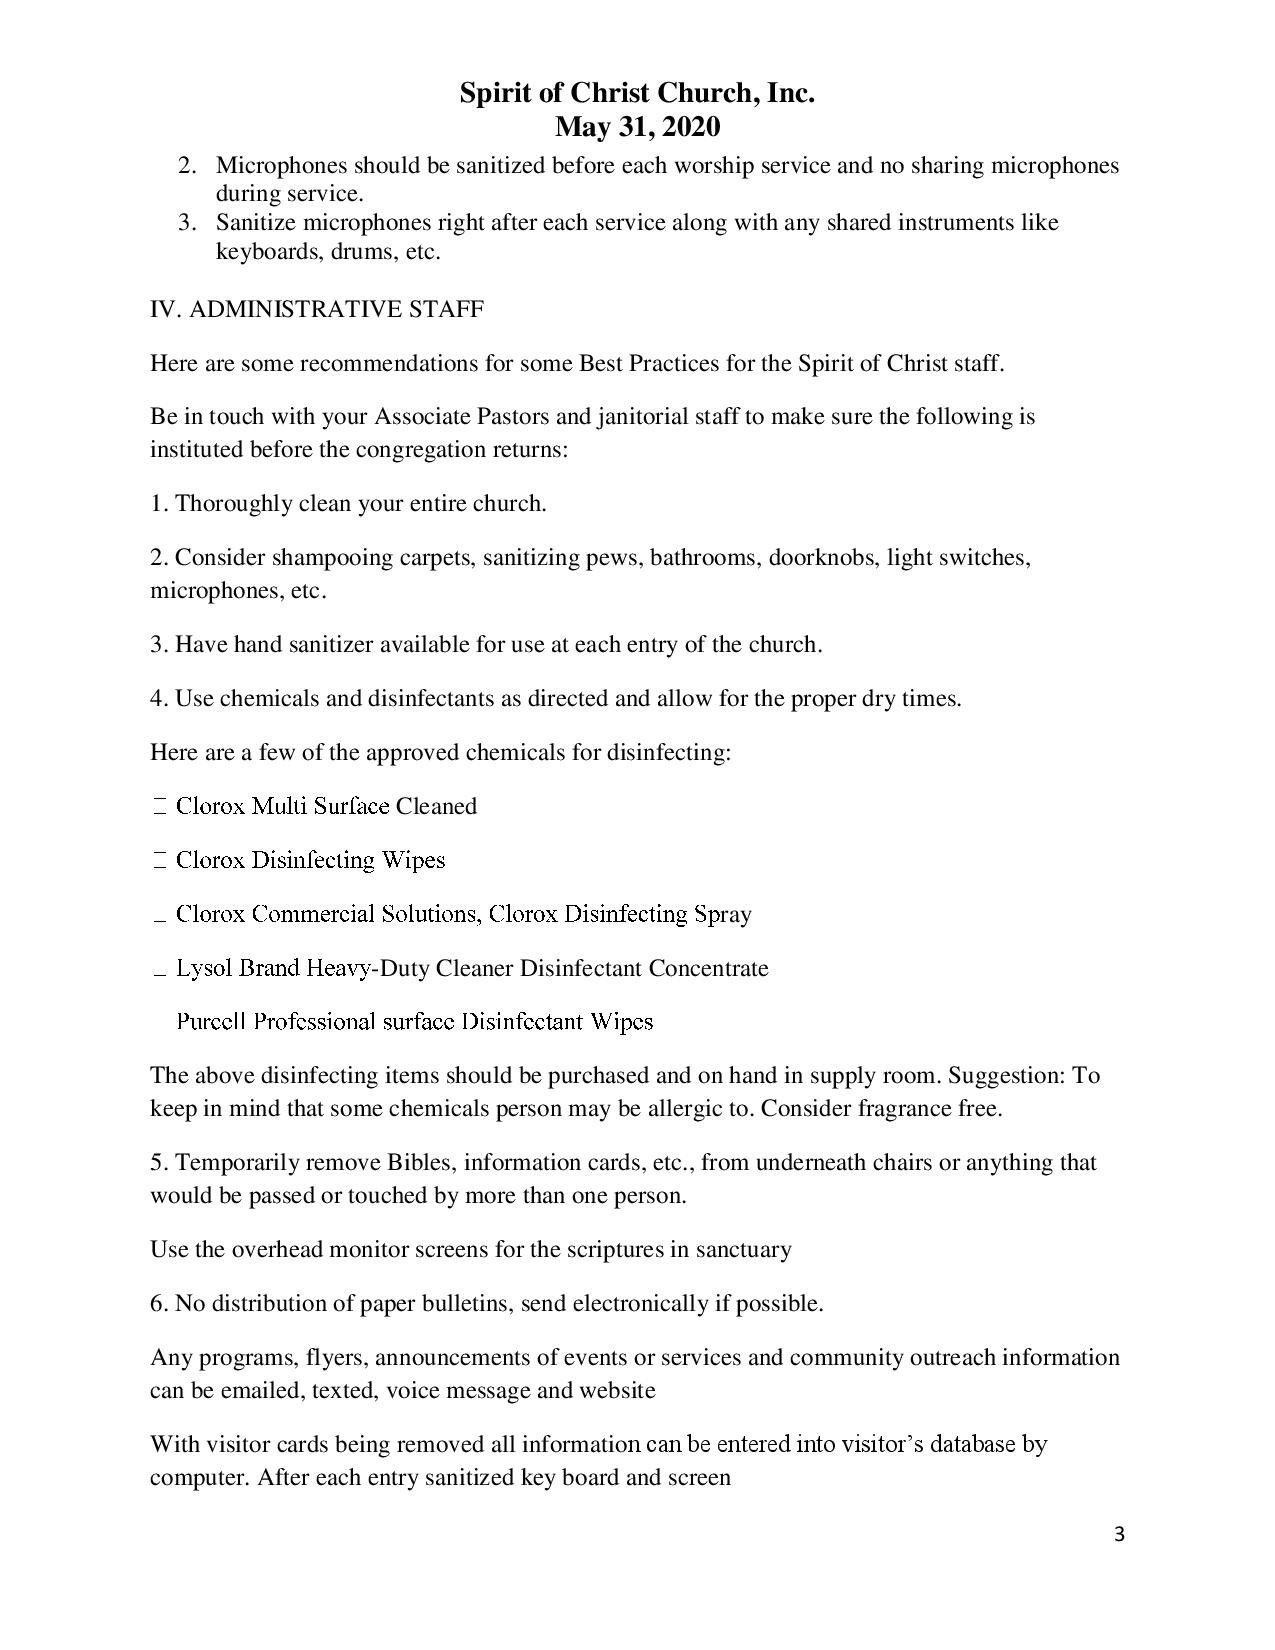 COVID-19_SAFELY REOPENING HOUSES OF WORSHIP GUIDELINE AND SUMMARY-page-003